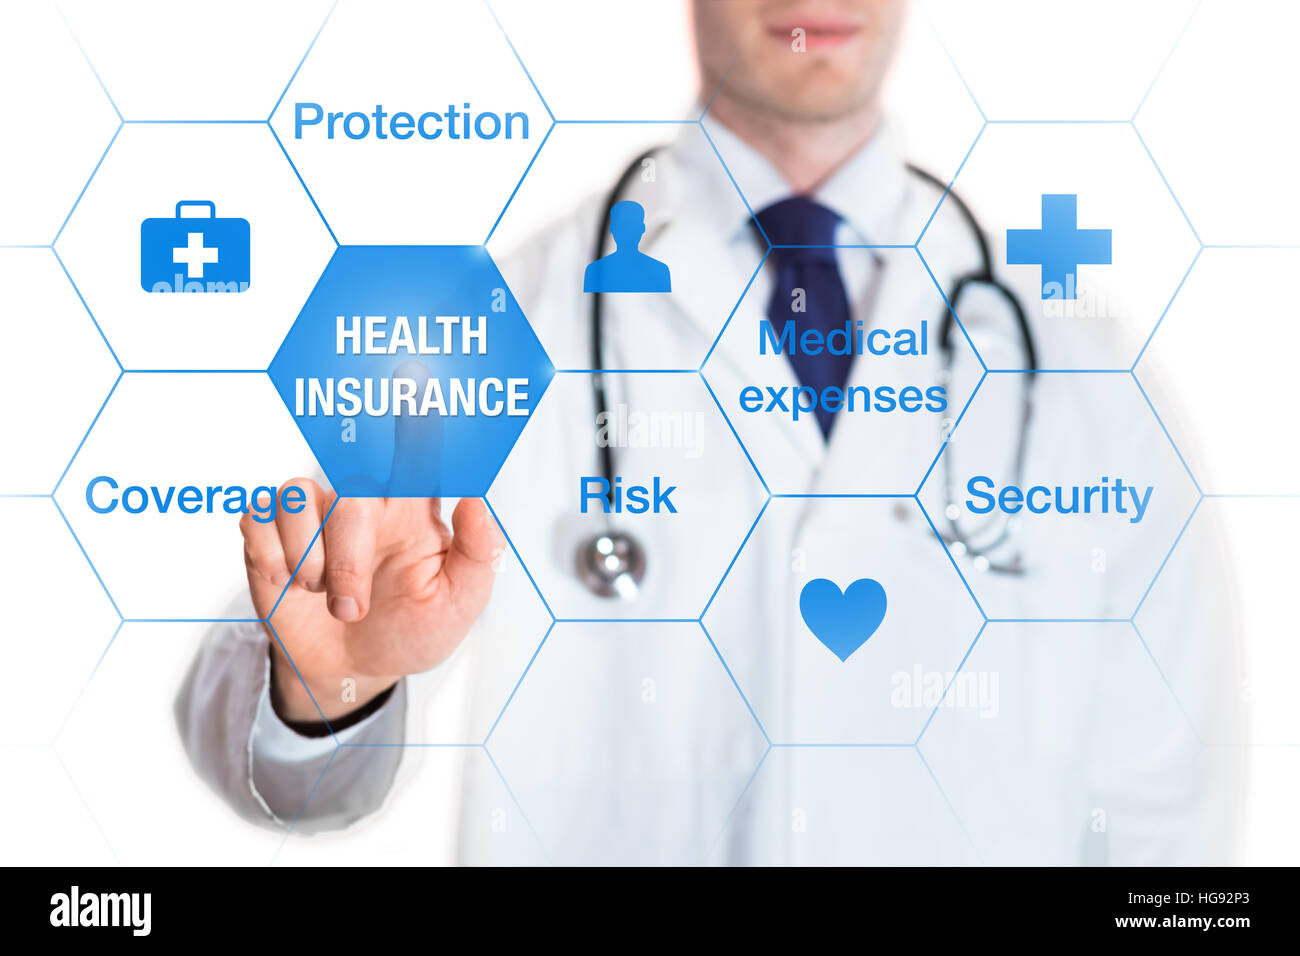 Health insurance concept with words coverage, protection, risk, and security on a virtual screen and a medical doctor - Stock Image